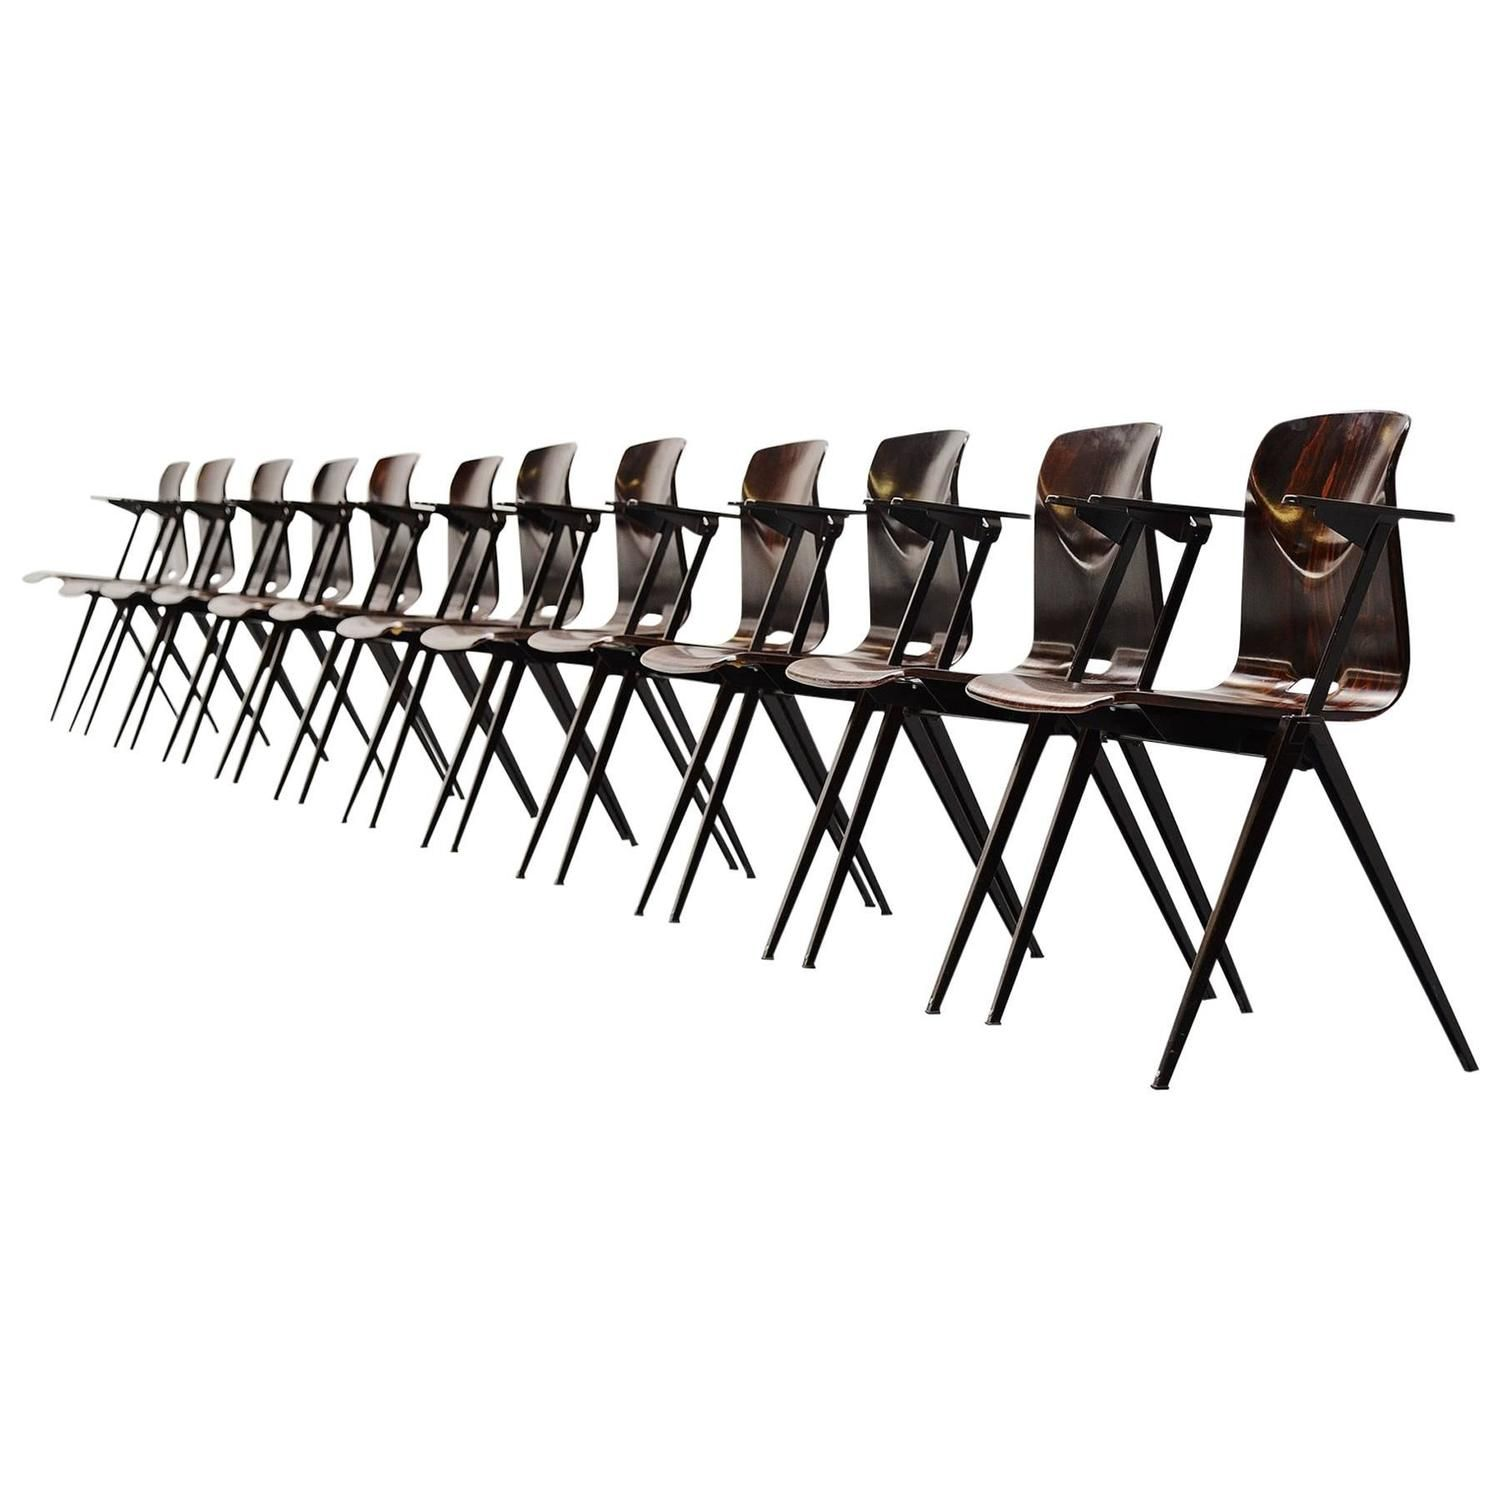 Pagholz Stacking Chairs with Arms Set of 12 Germany, 1970   From a ...